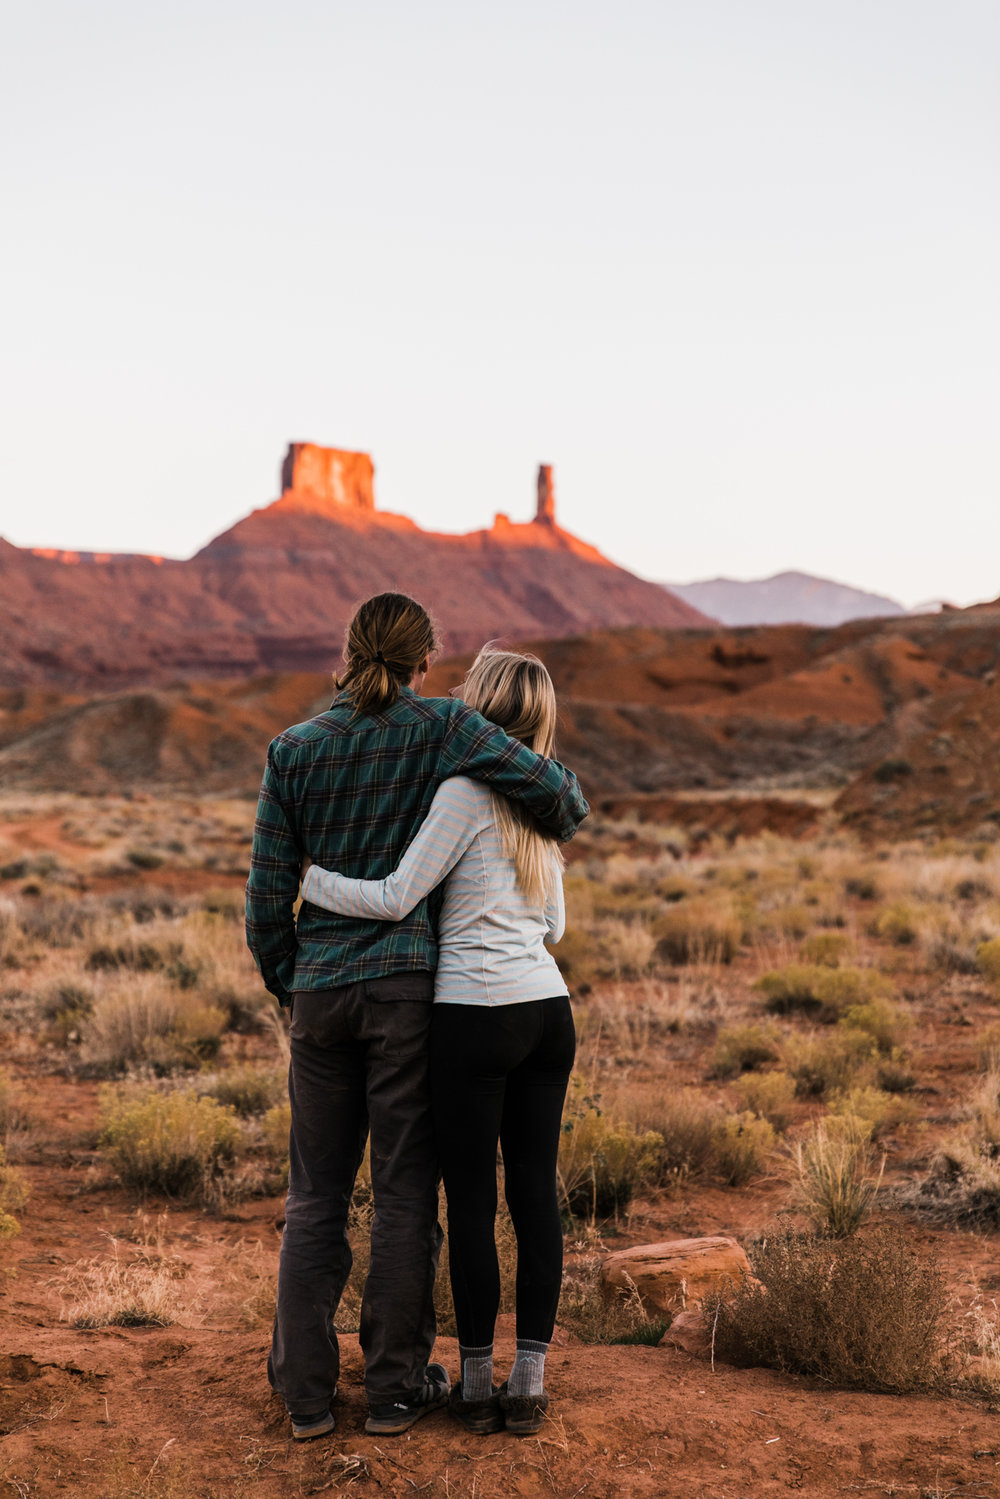 camping in moab utah | utah and california adventure elopement photographers | the hearnes adventure photography | www.thehearnes.com